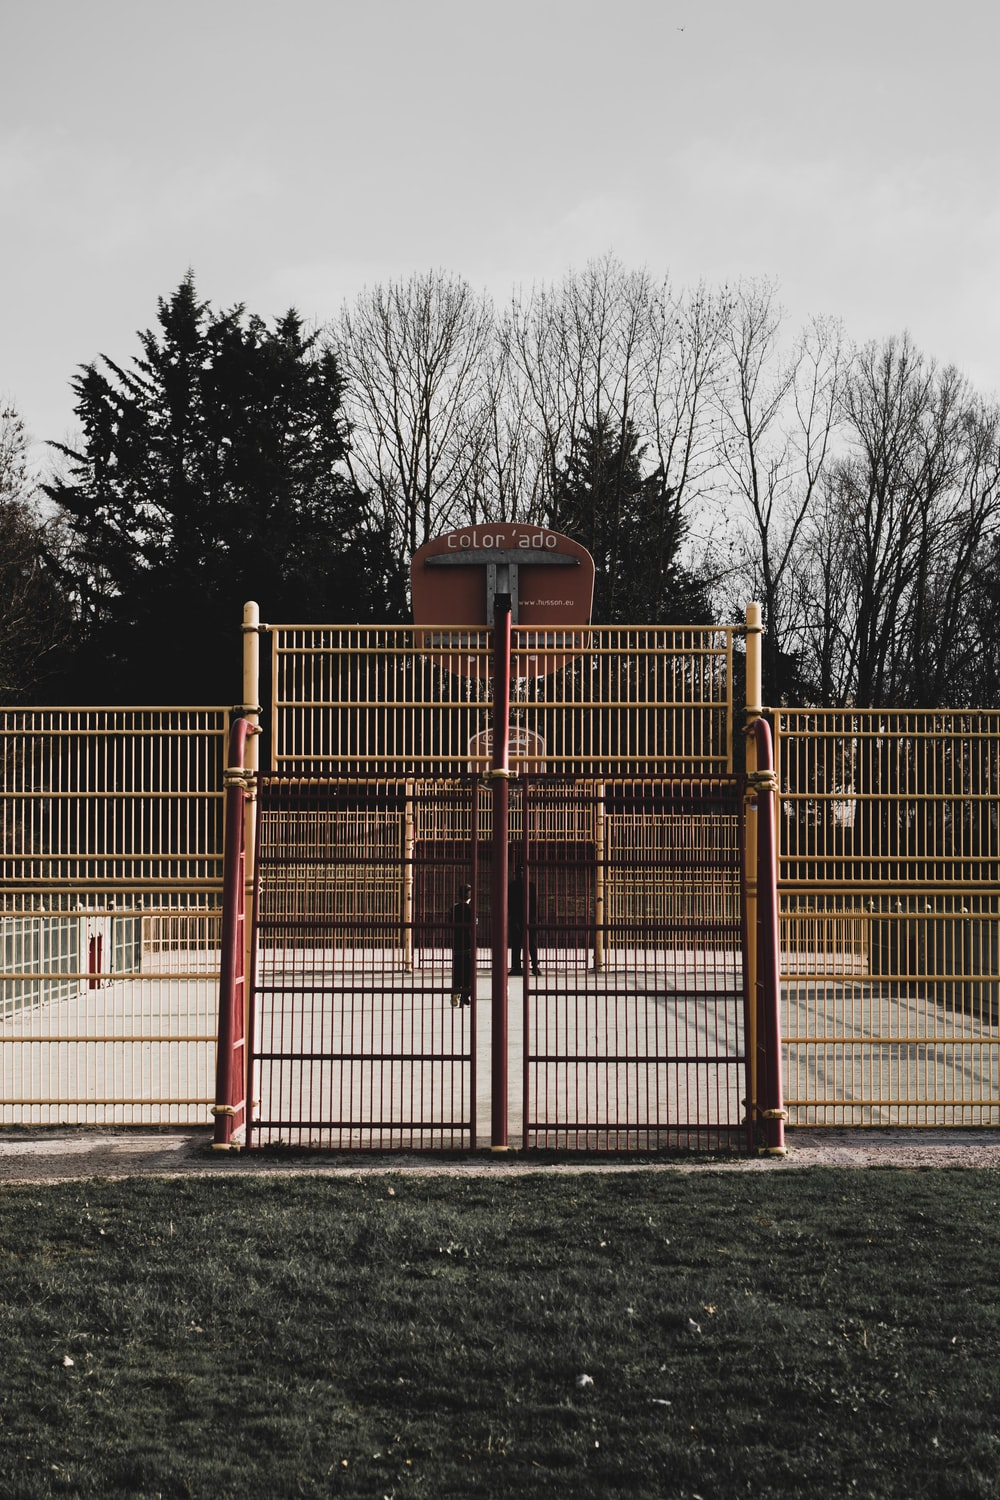 empty basketball court at daytime